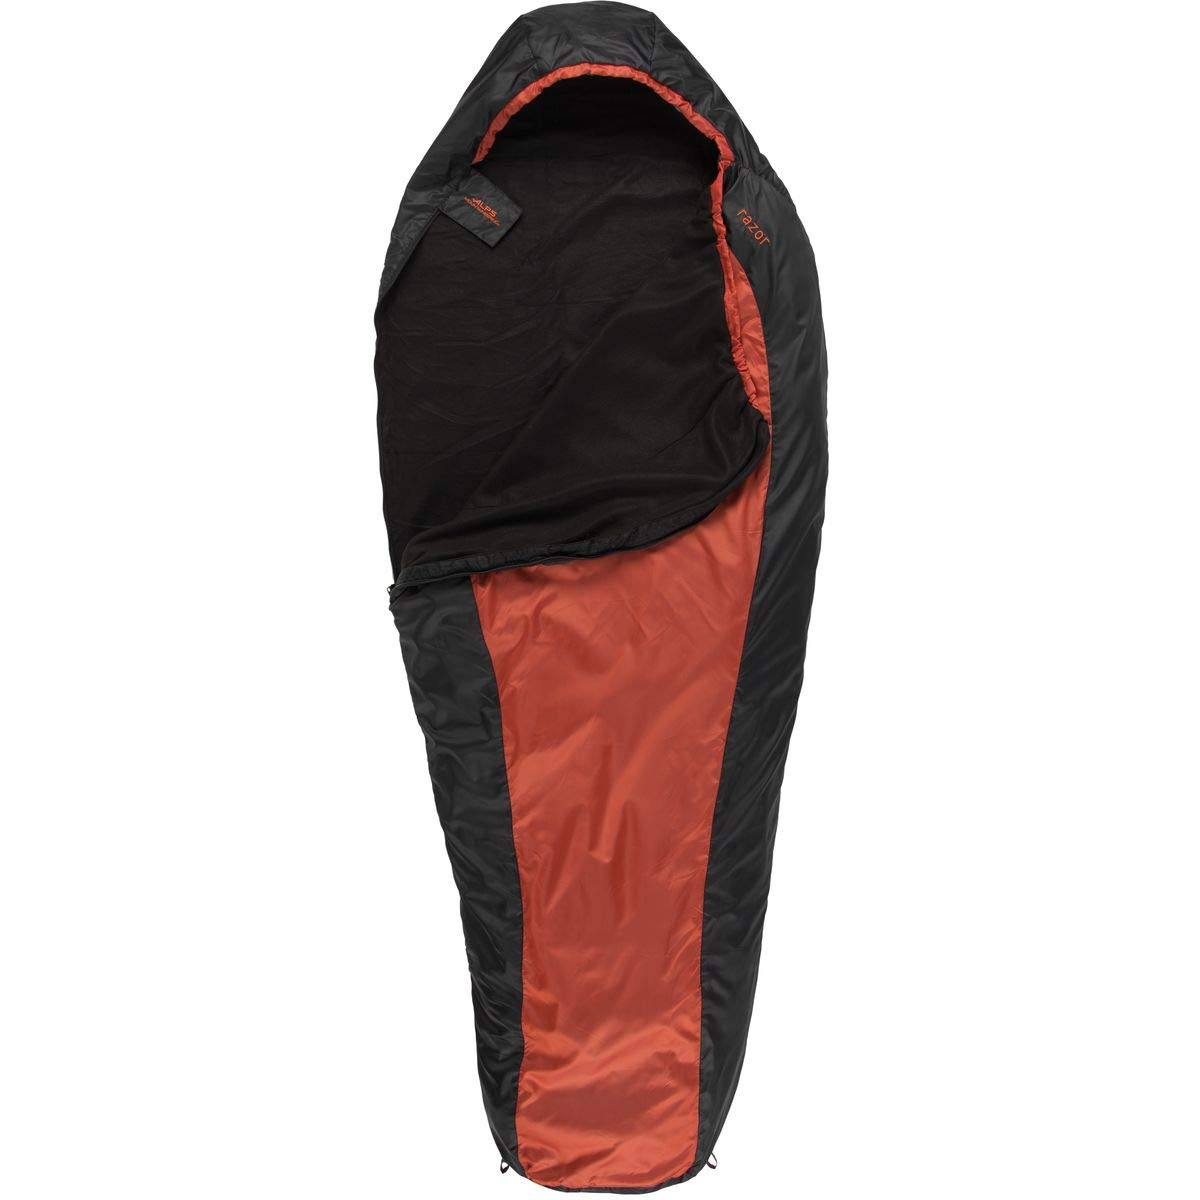 ALPS Mountaineering Razor Lightweight Sleeping Bag Liner by ALPS Mountaineering